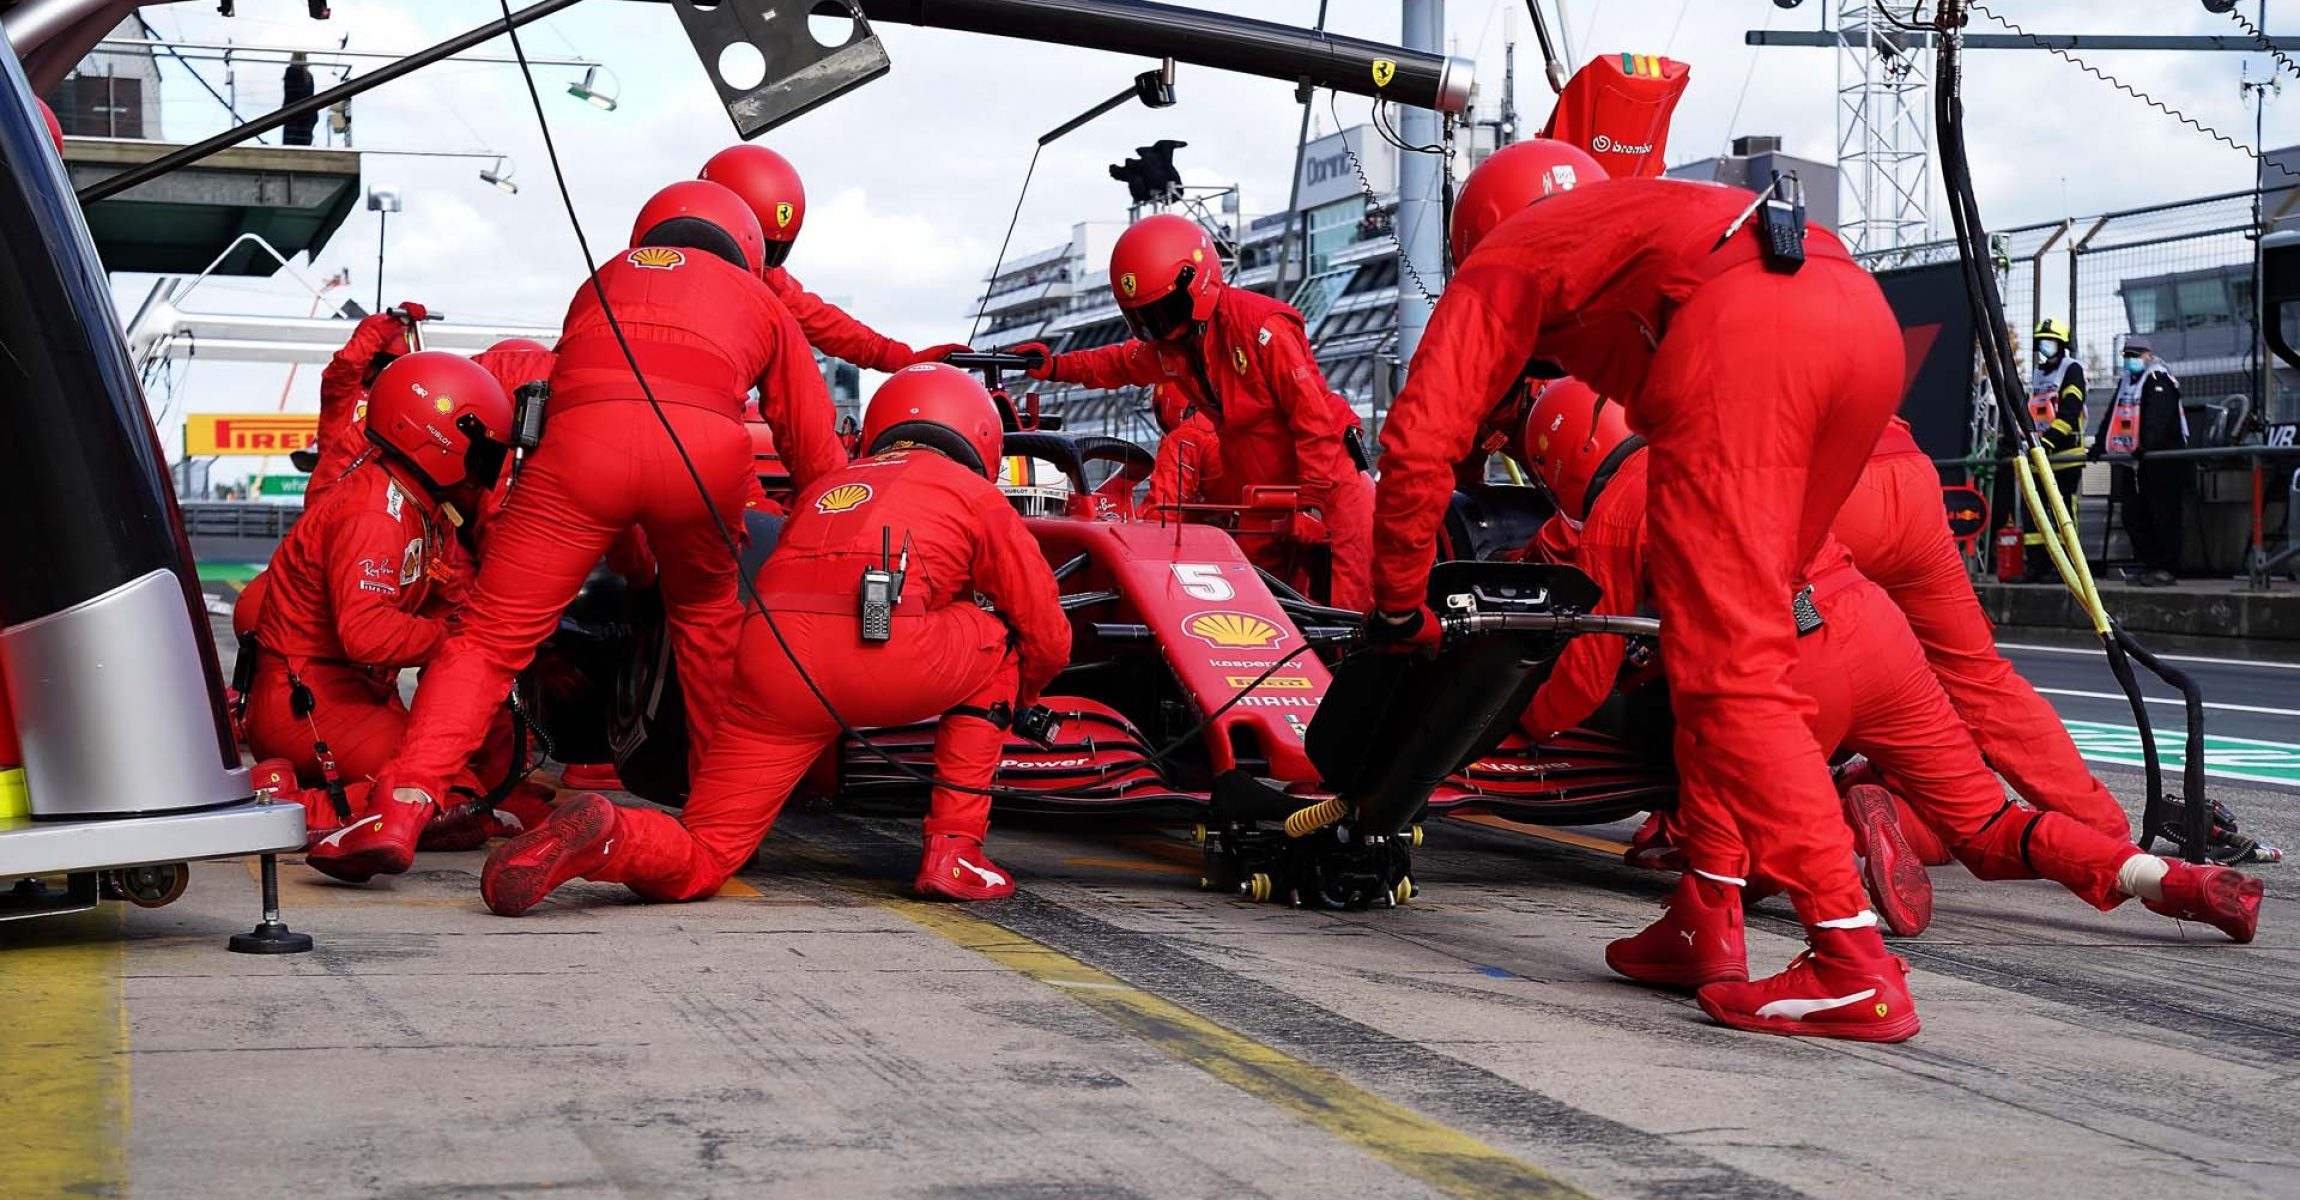 GP GERMANIA F1/2020 -  DOMENICA 11/10/2020   credit: @Scuderia Ferrari Press Office Sebastian Vettel pitstop